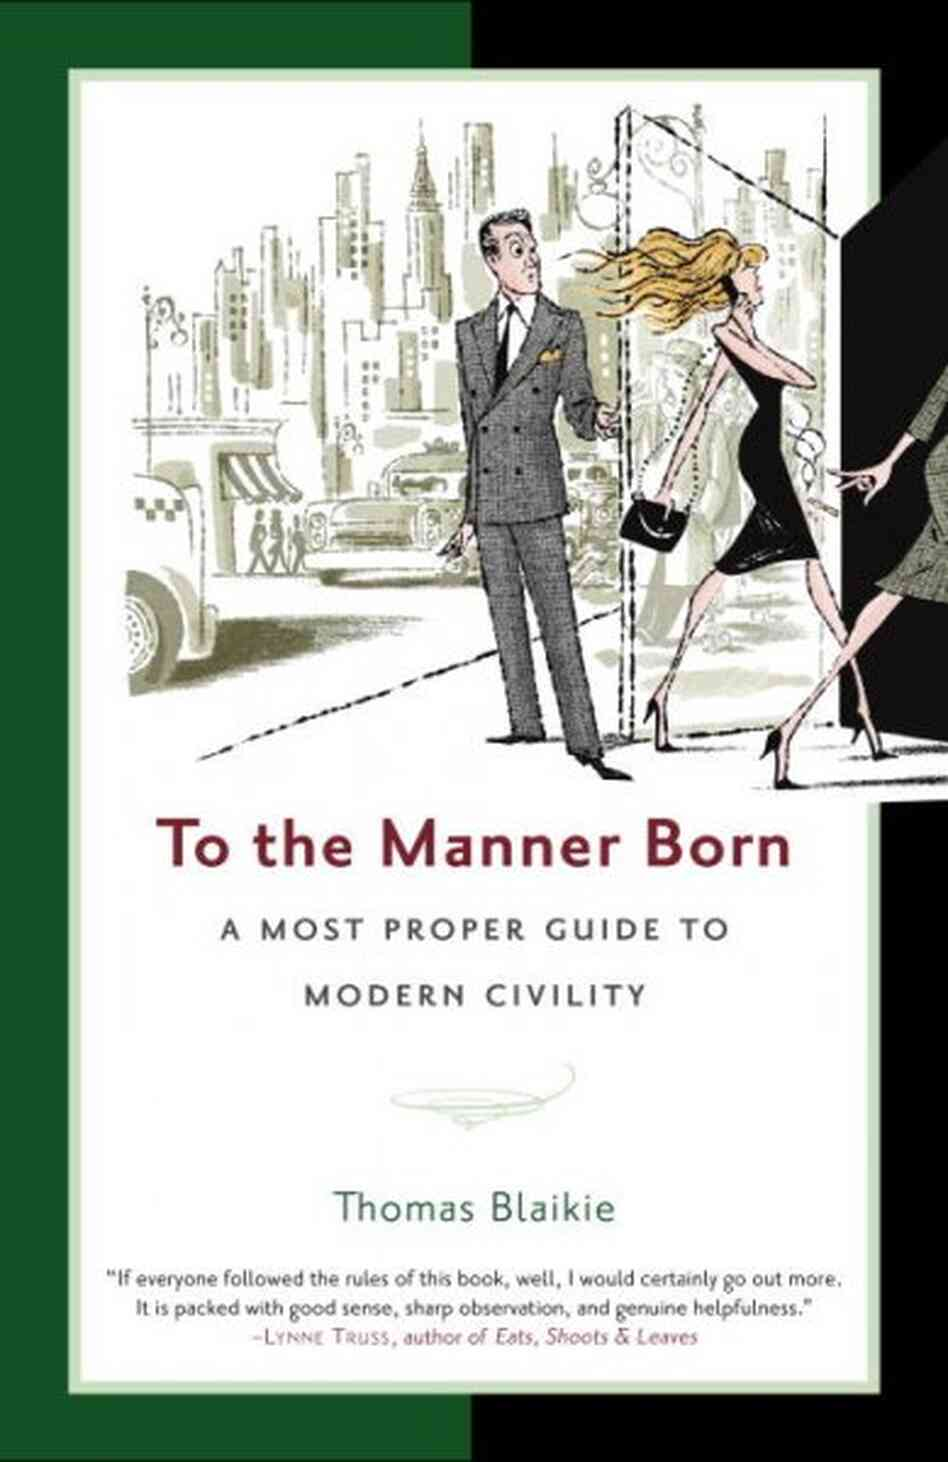 To the Manner Born